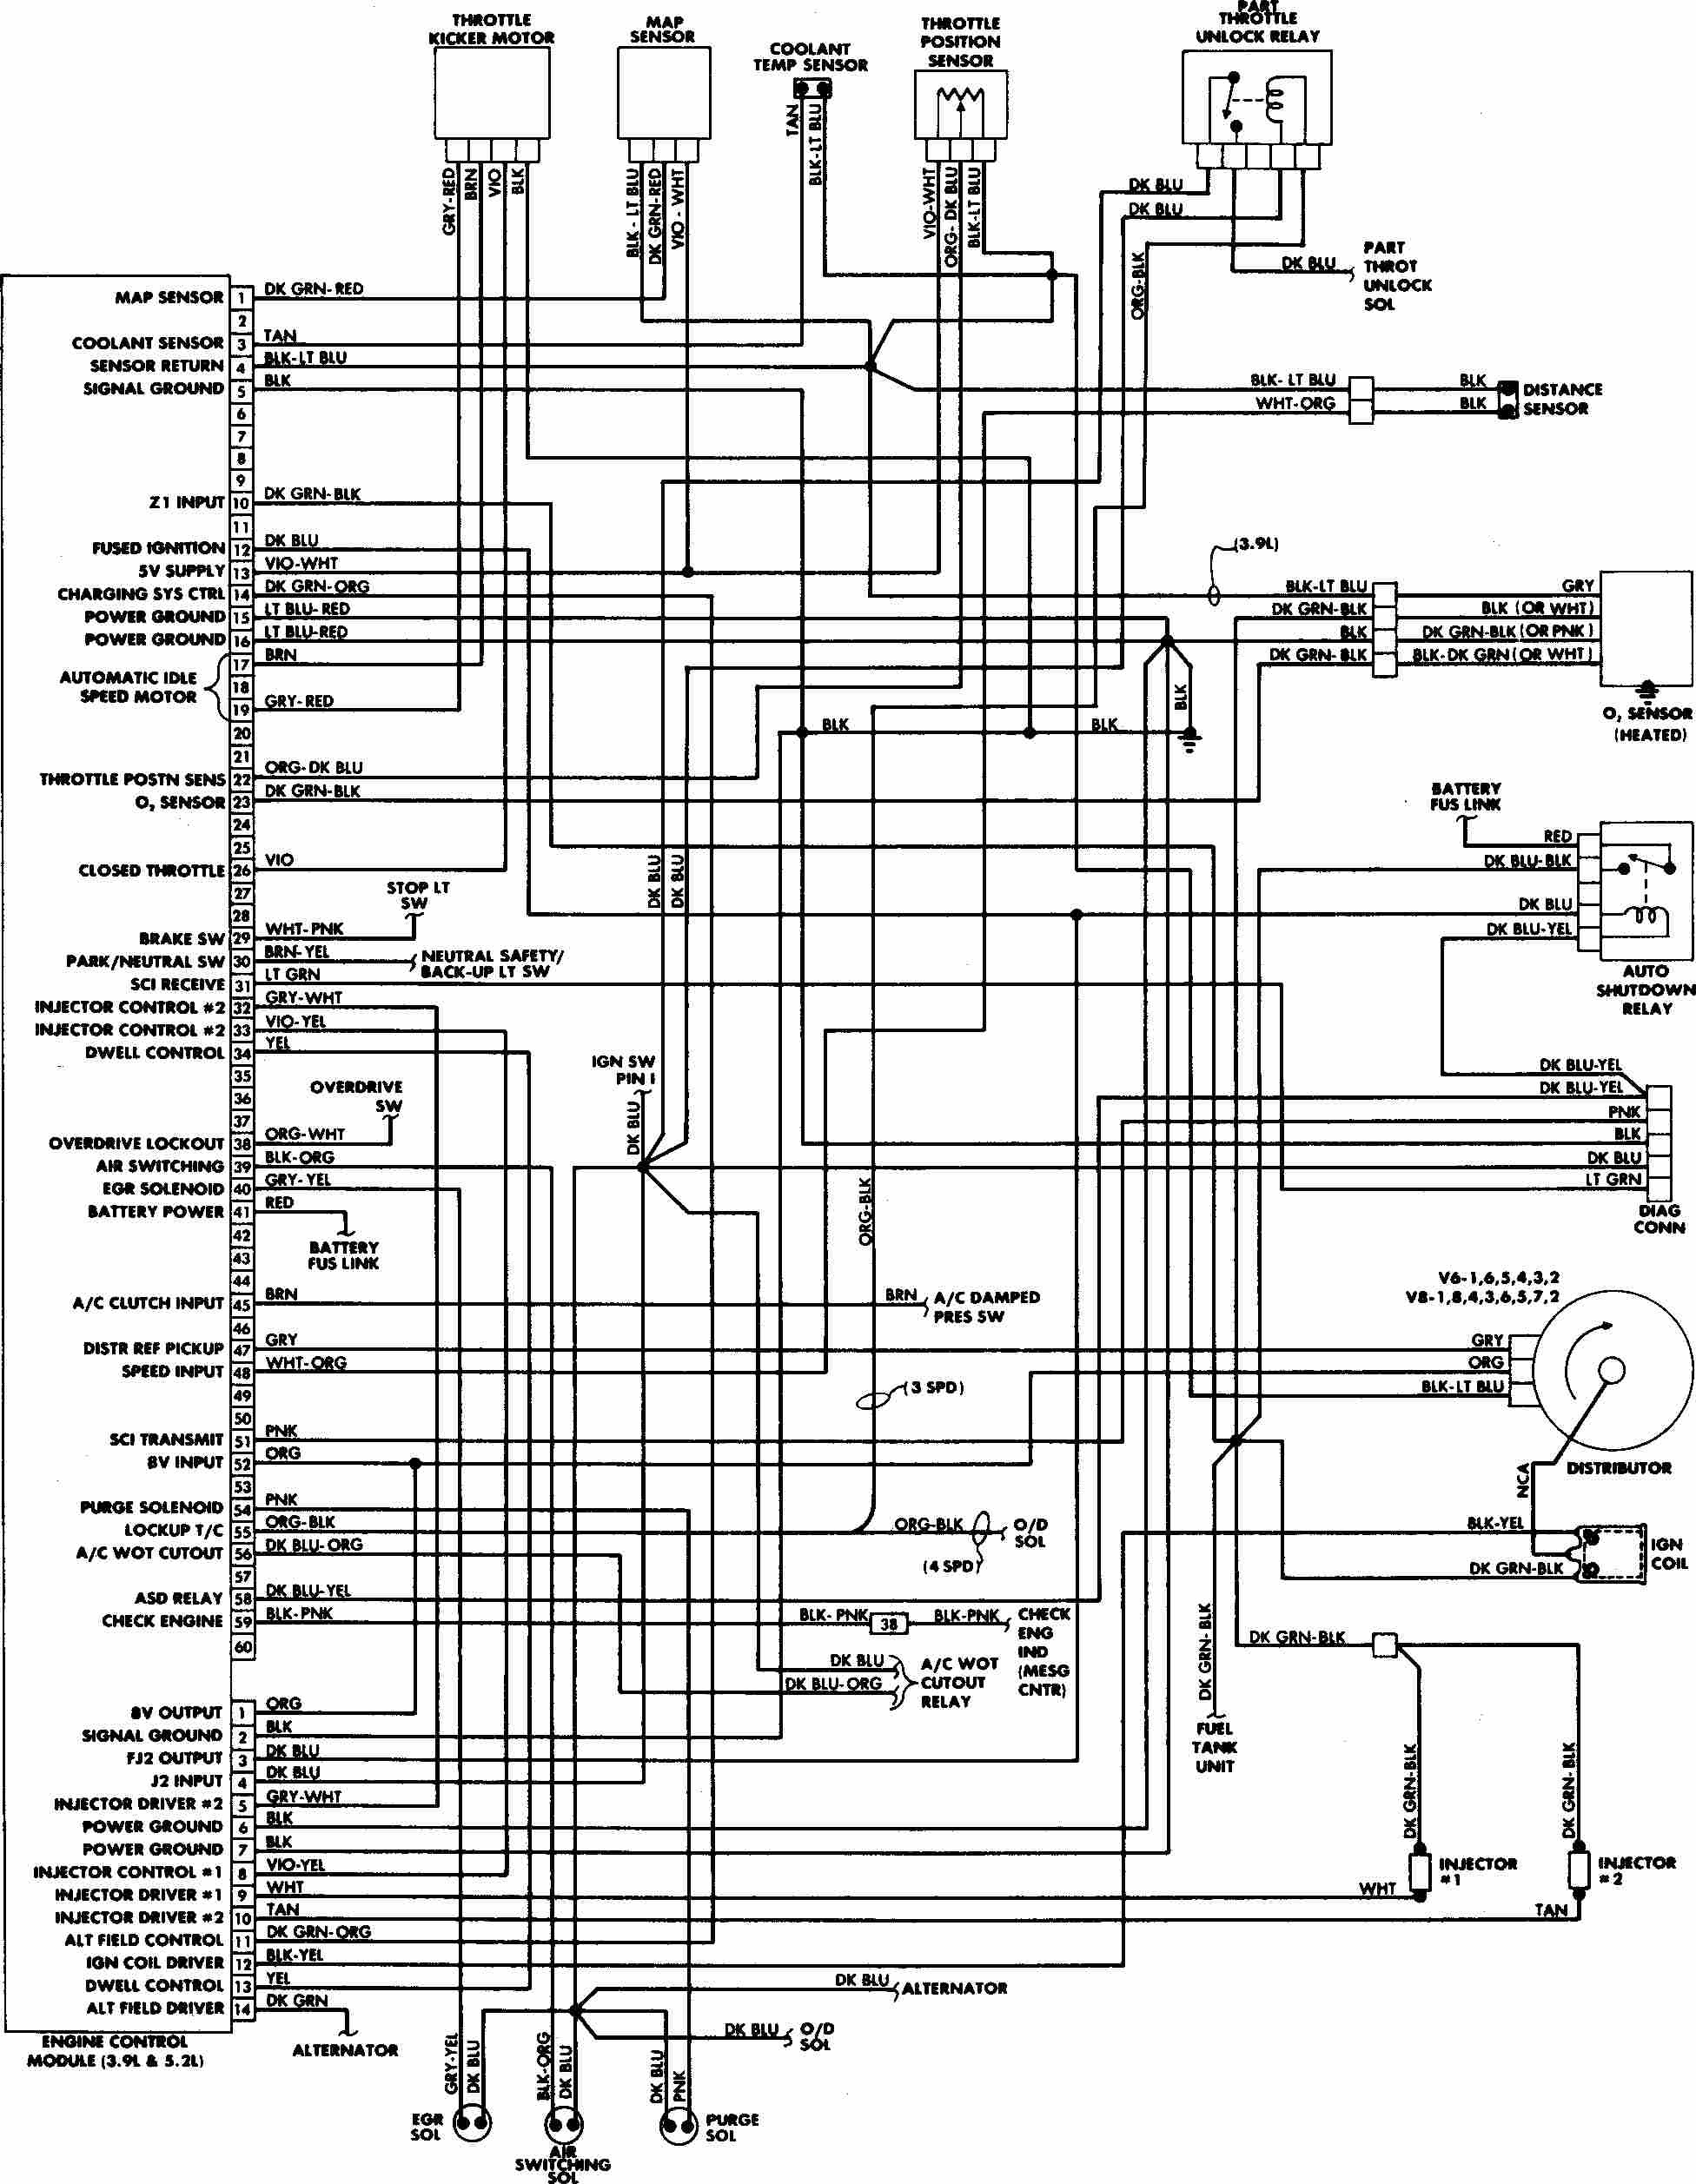 1976 chevy luv wiring diagram